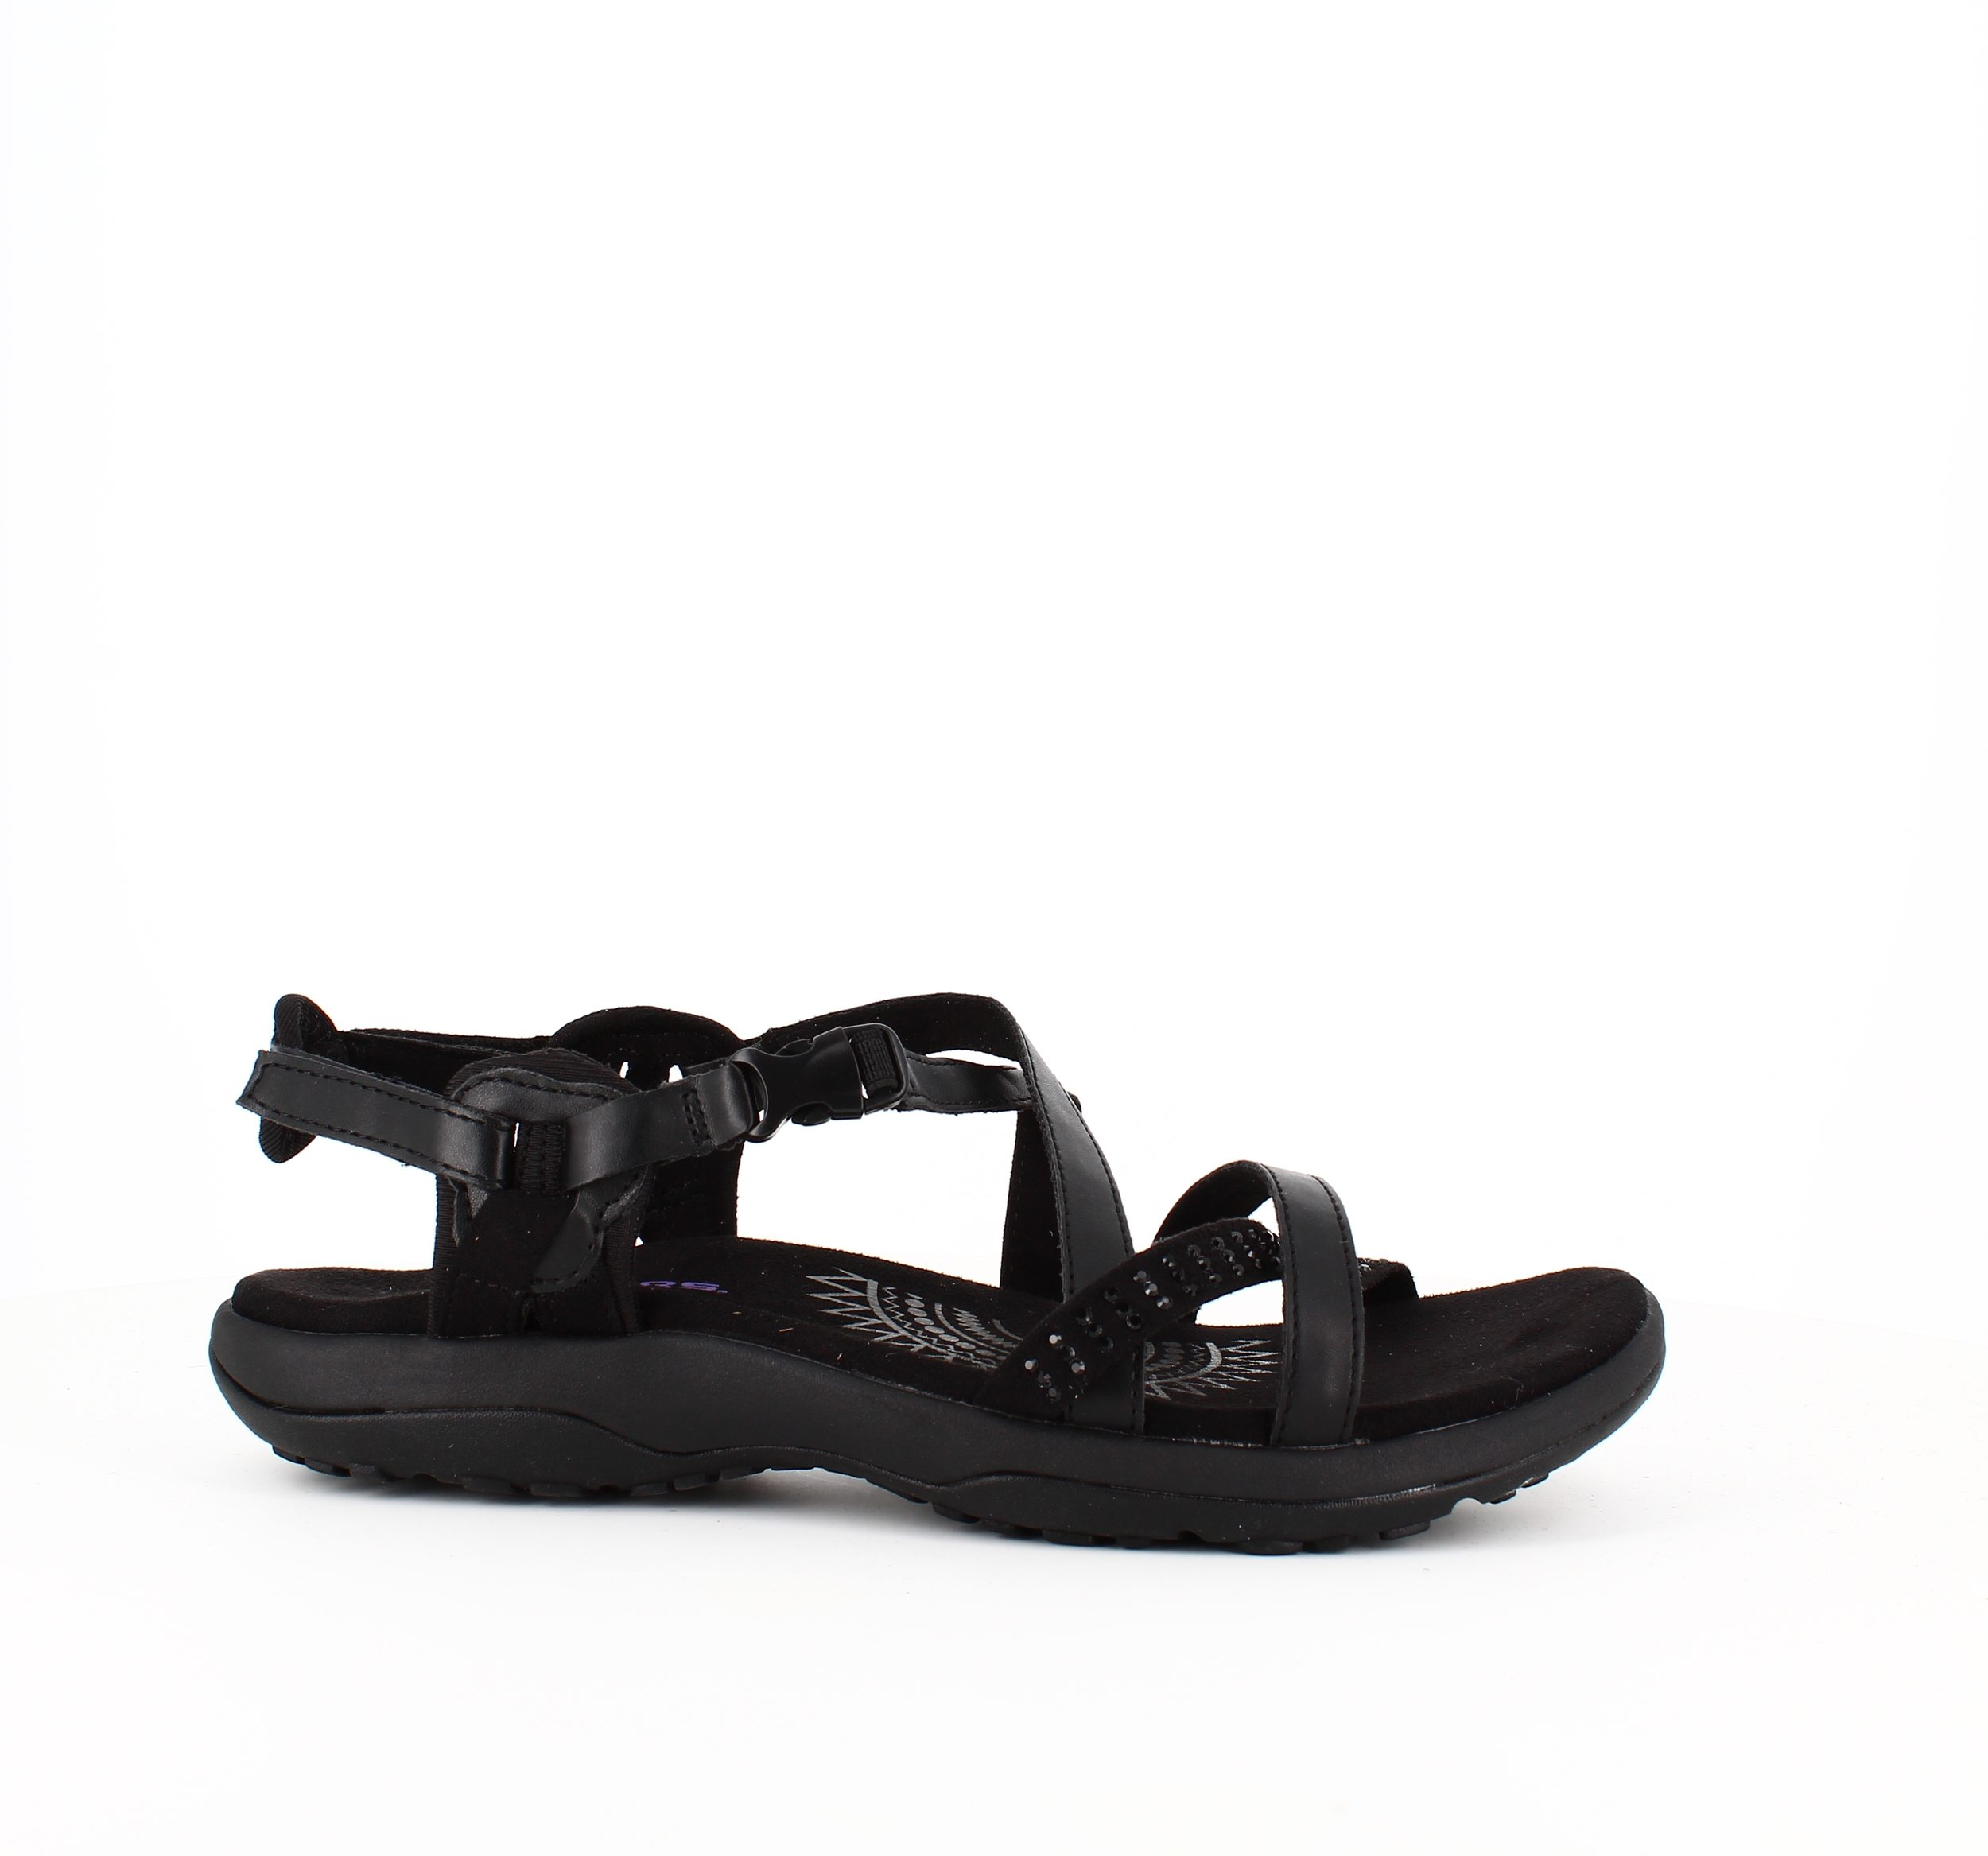 Image of   Skechers sandal i sort med smalle remme - 36